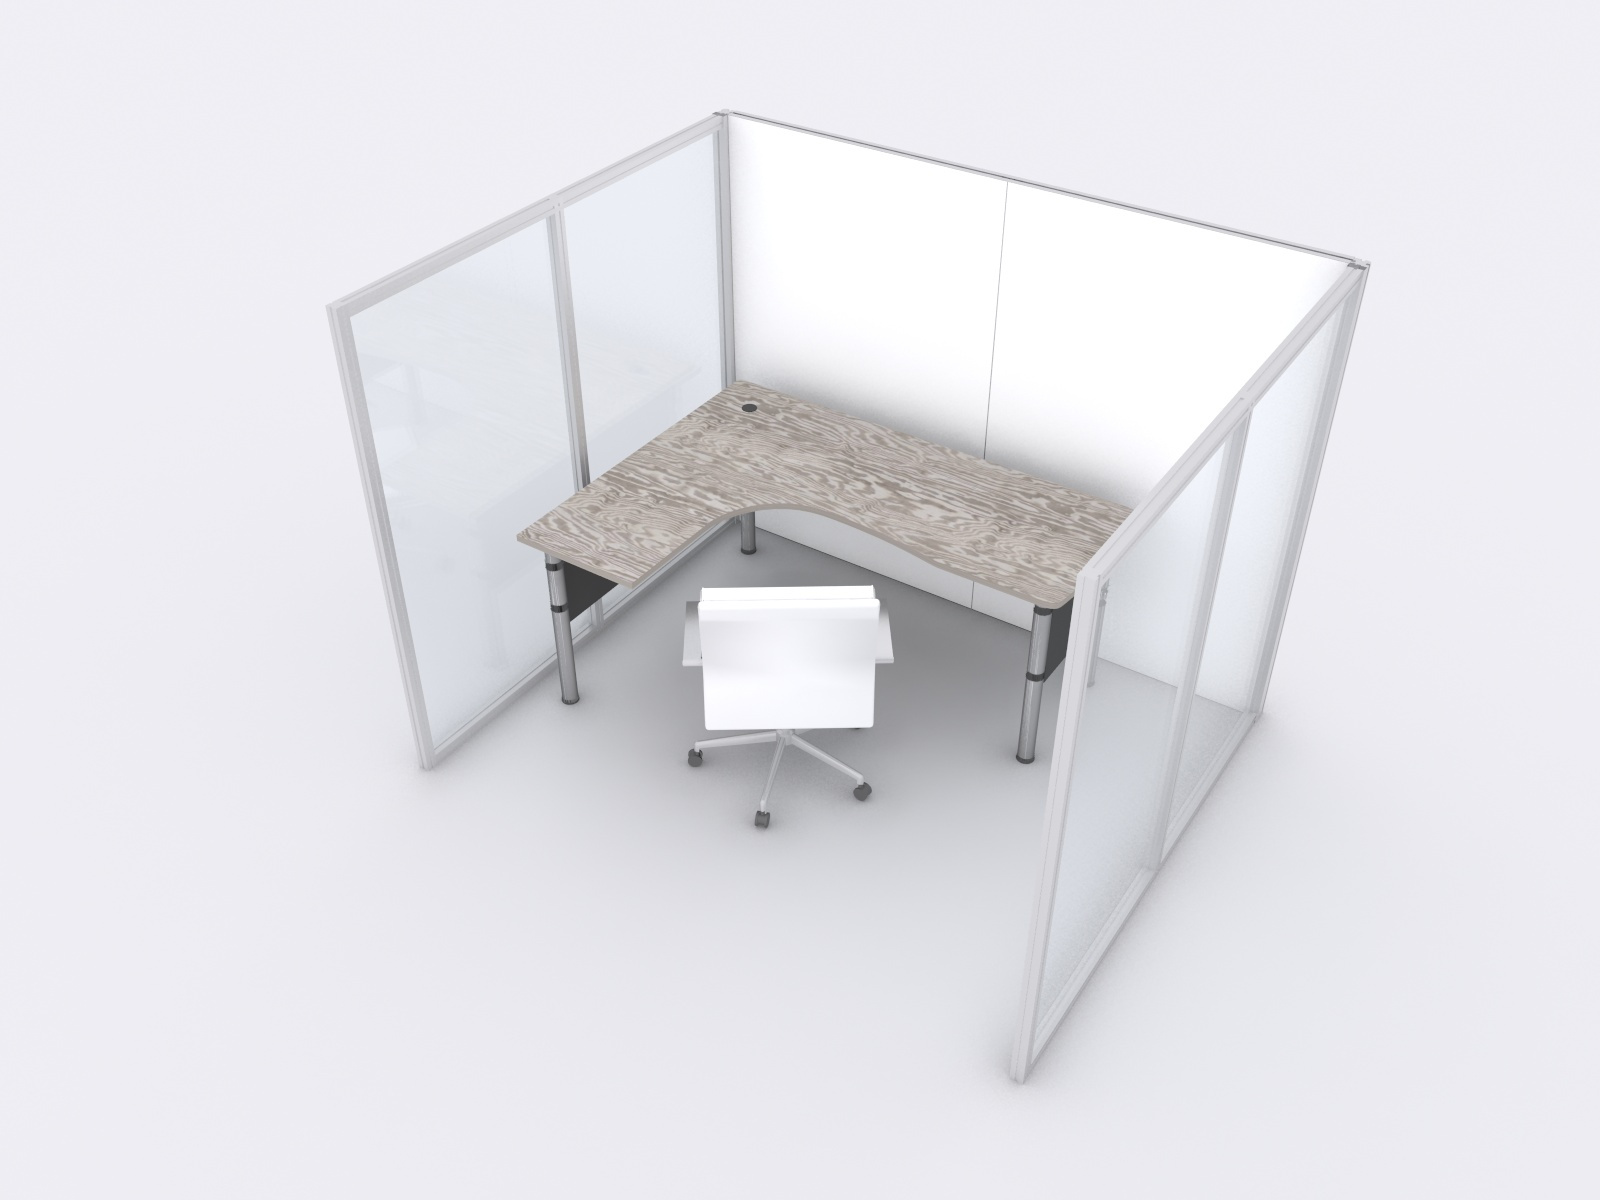 050520-Office-Pod-Single-Modul-38-and-Gravitee-46x72-View-20000